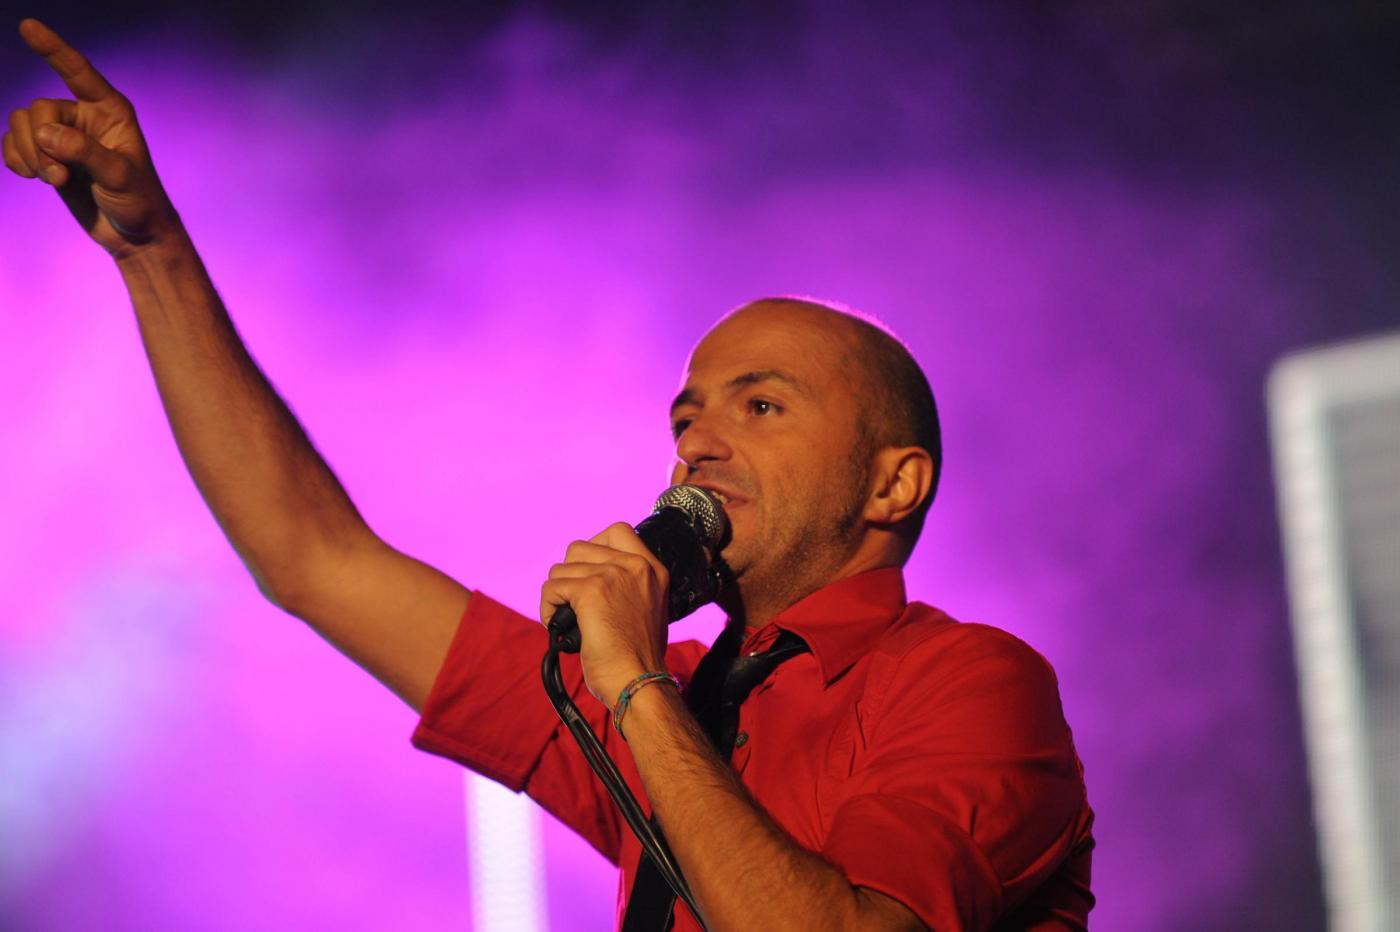 Subsonica Morricone